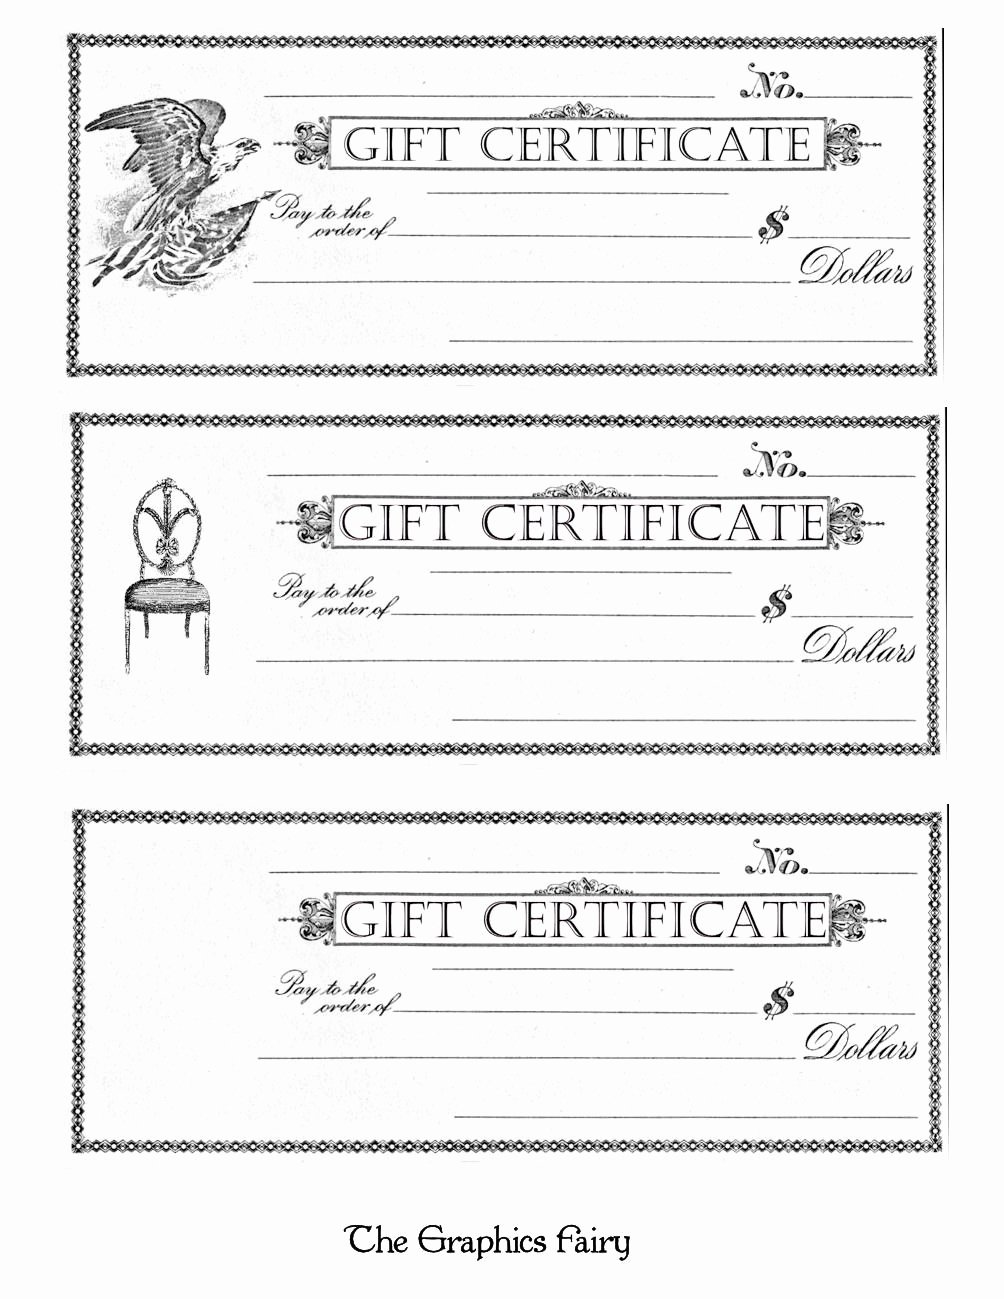 Blank Gift Certificate Paper Lovely Free Printable Gift Certificates the Graphics Fairy